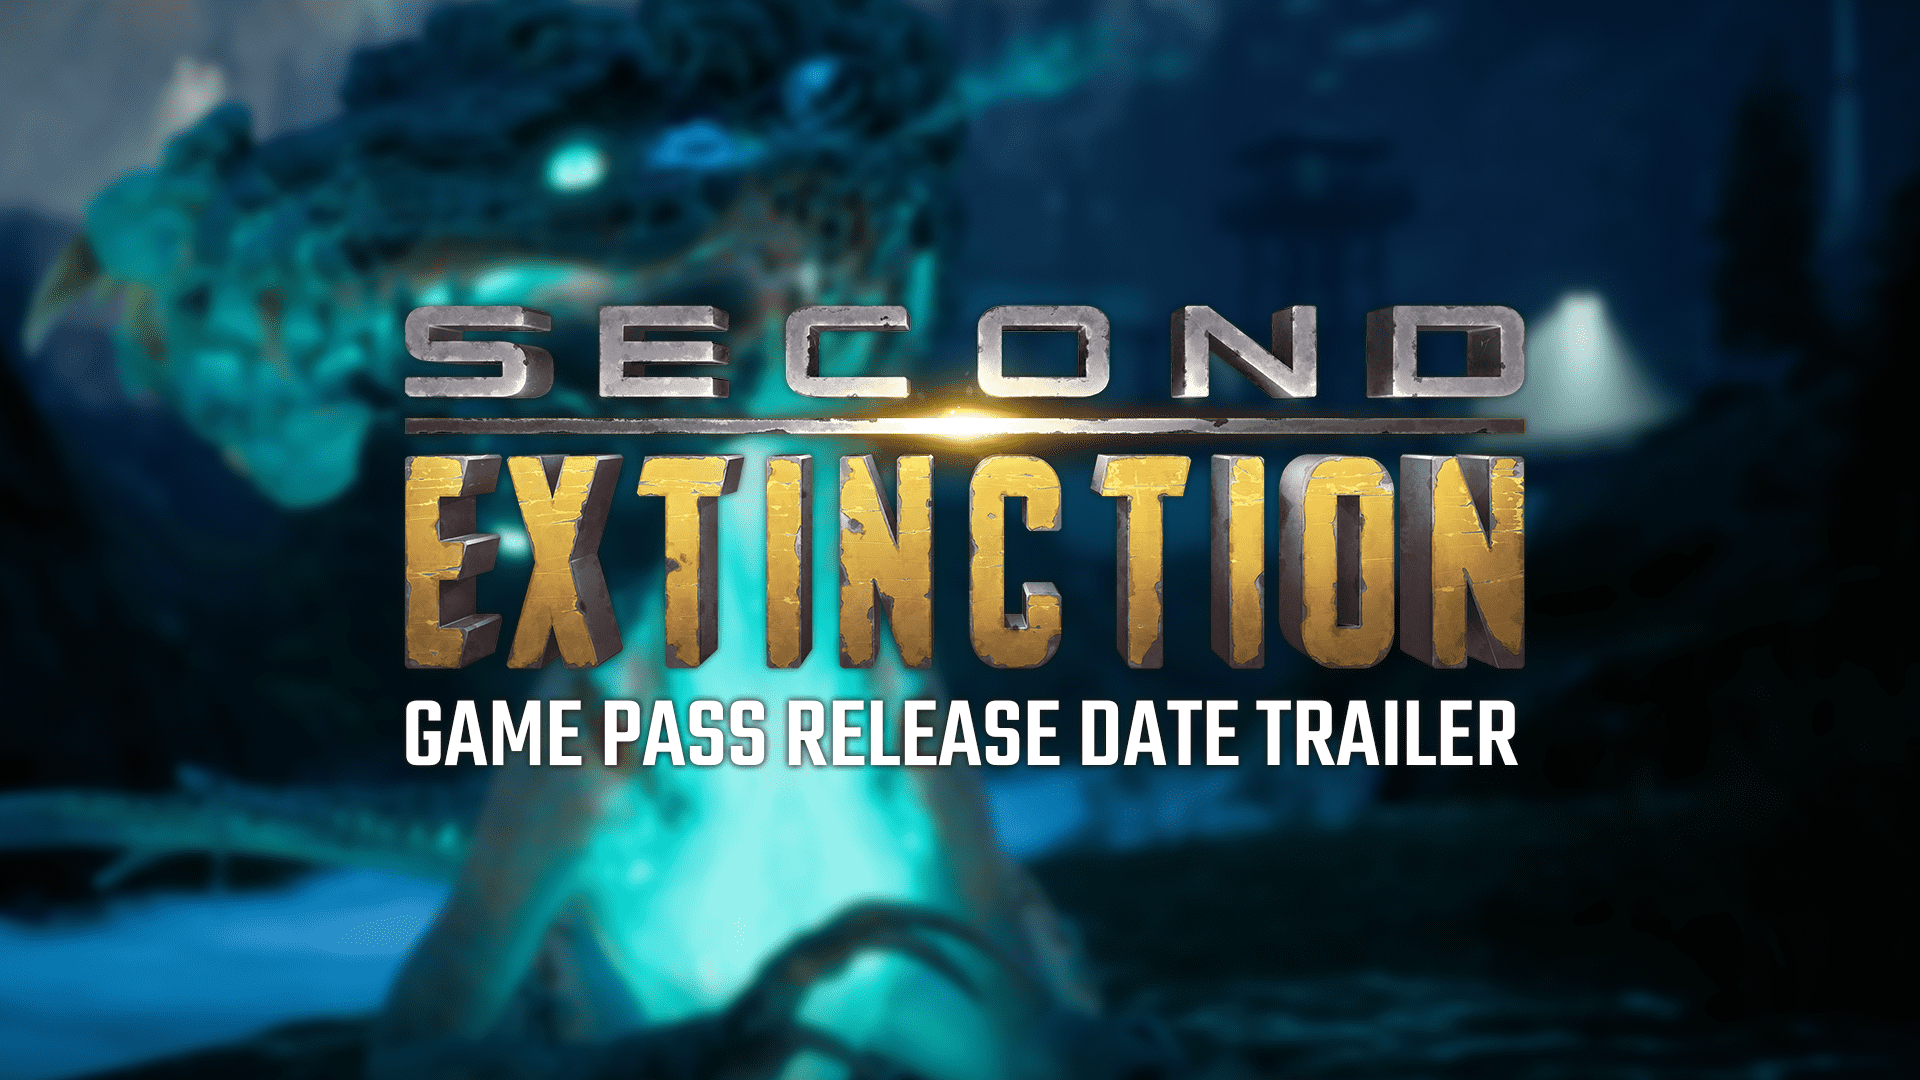 Game Pass Release Date Trailer